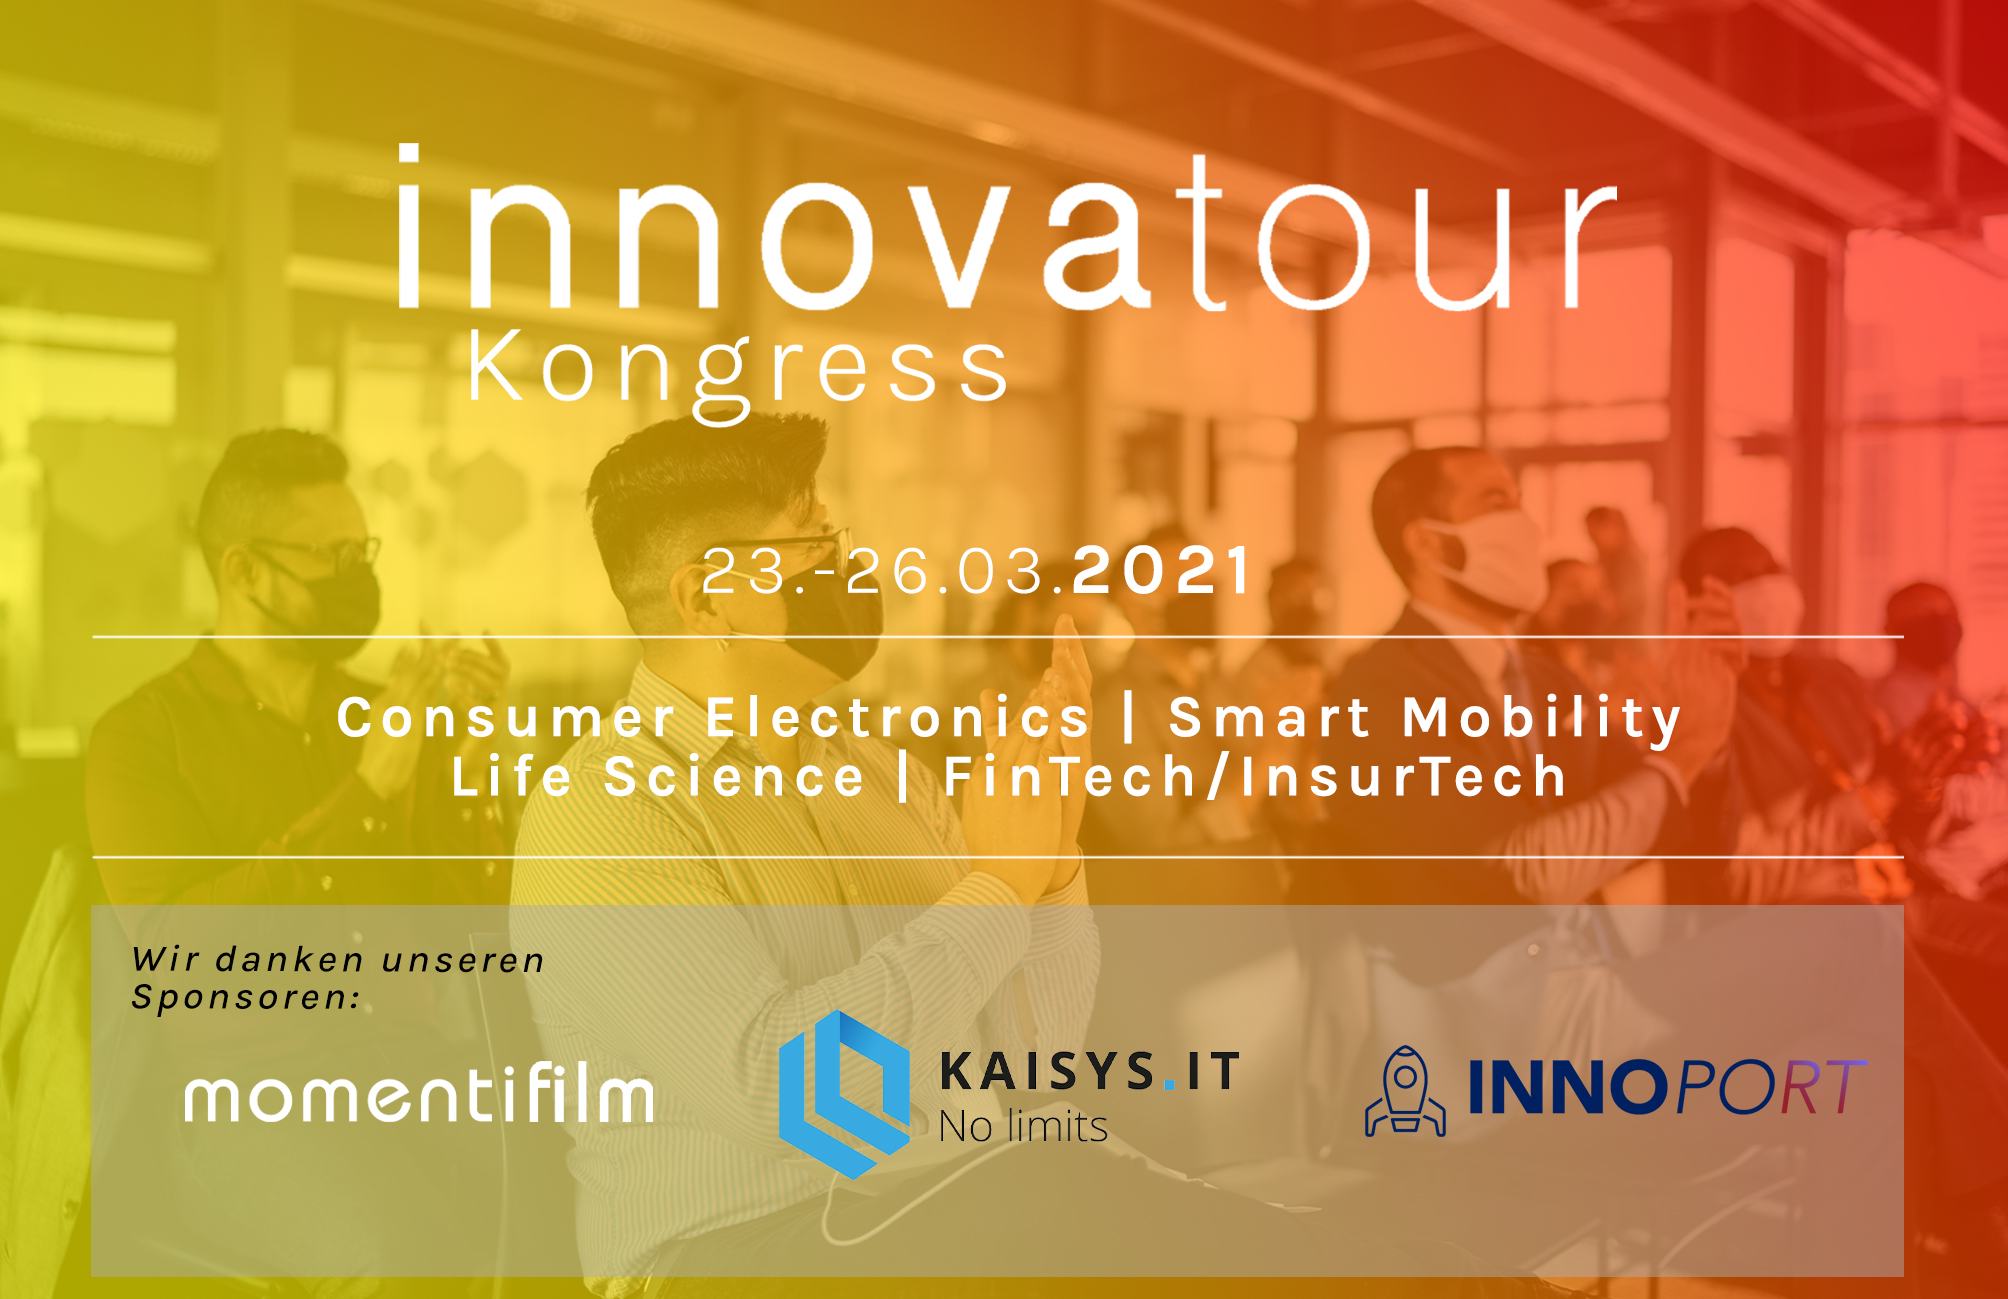 Flyer Innovatour Kongress